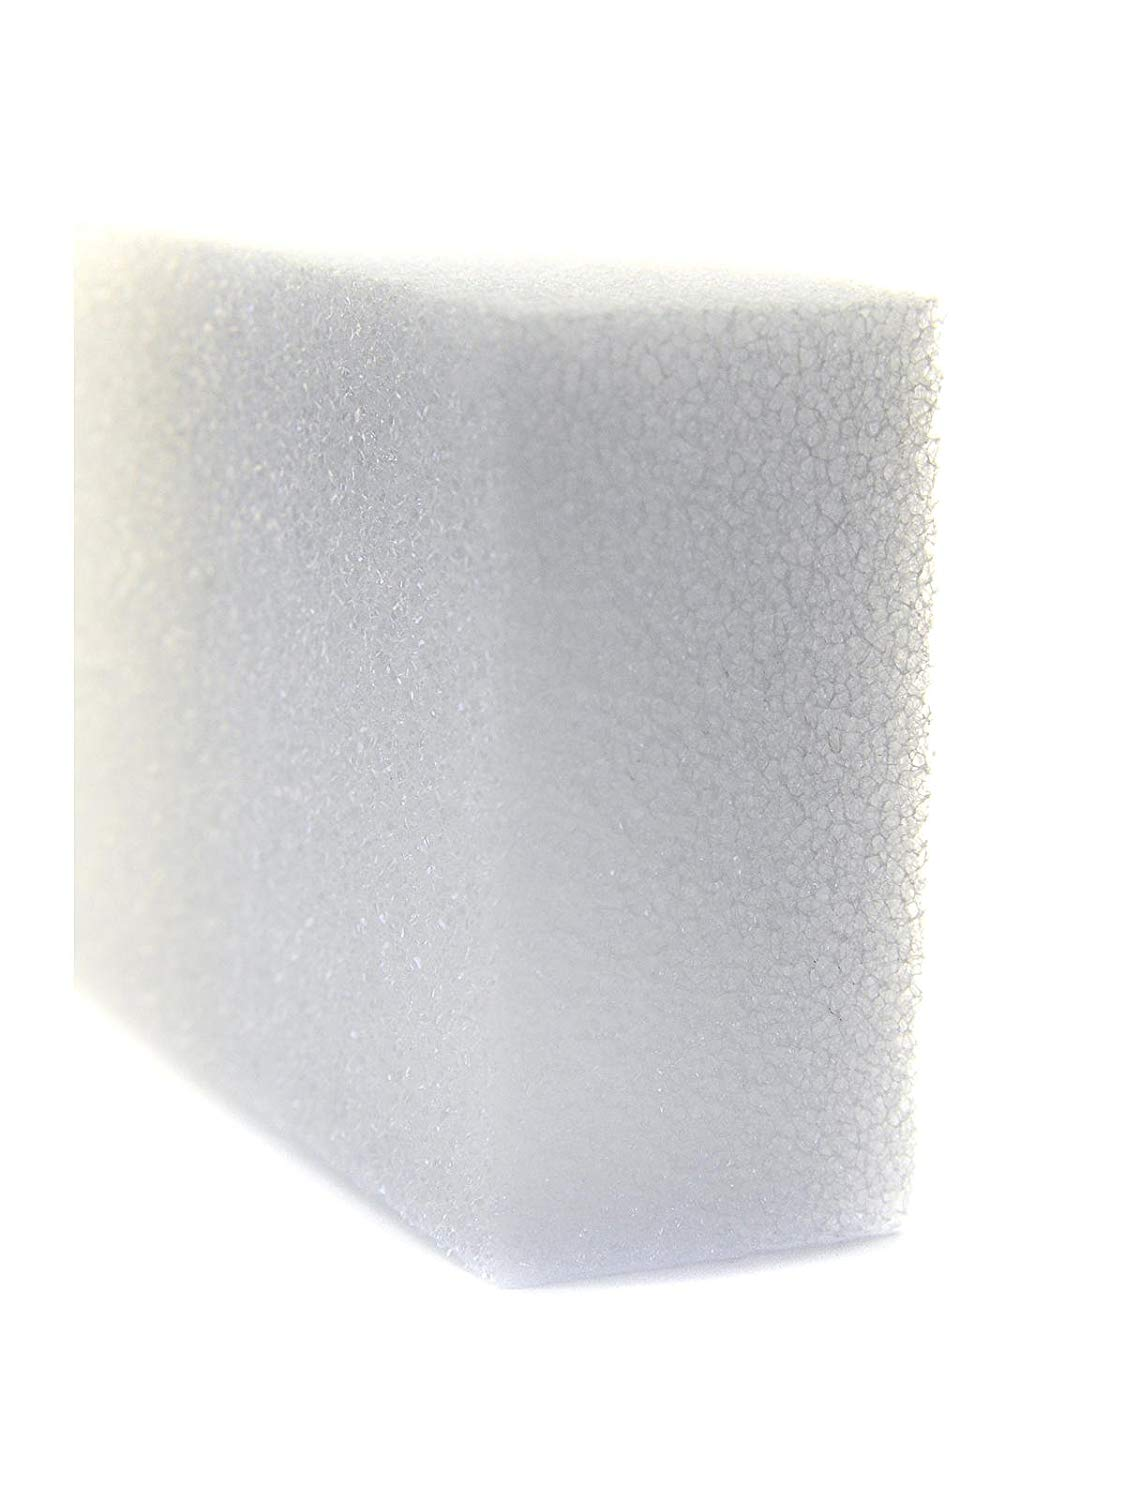 FloraCraft Styrofoam Blocks 8 in. x 4 in. x 2 in. each [PACK OF 12 ]